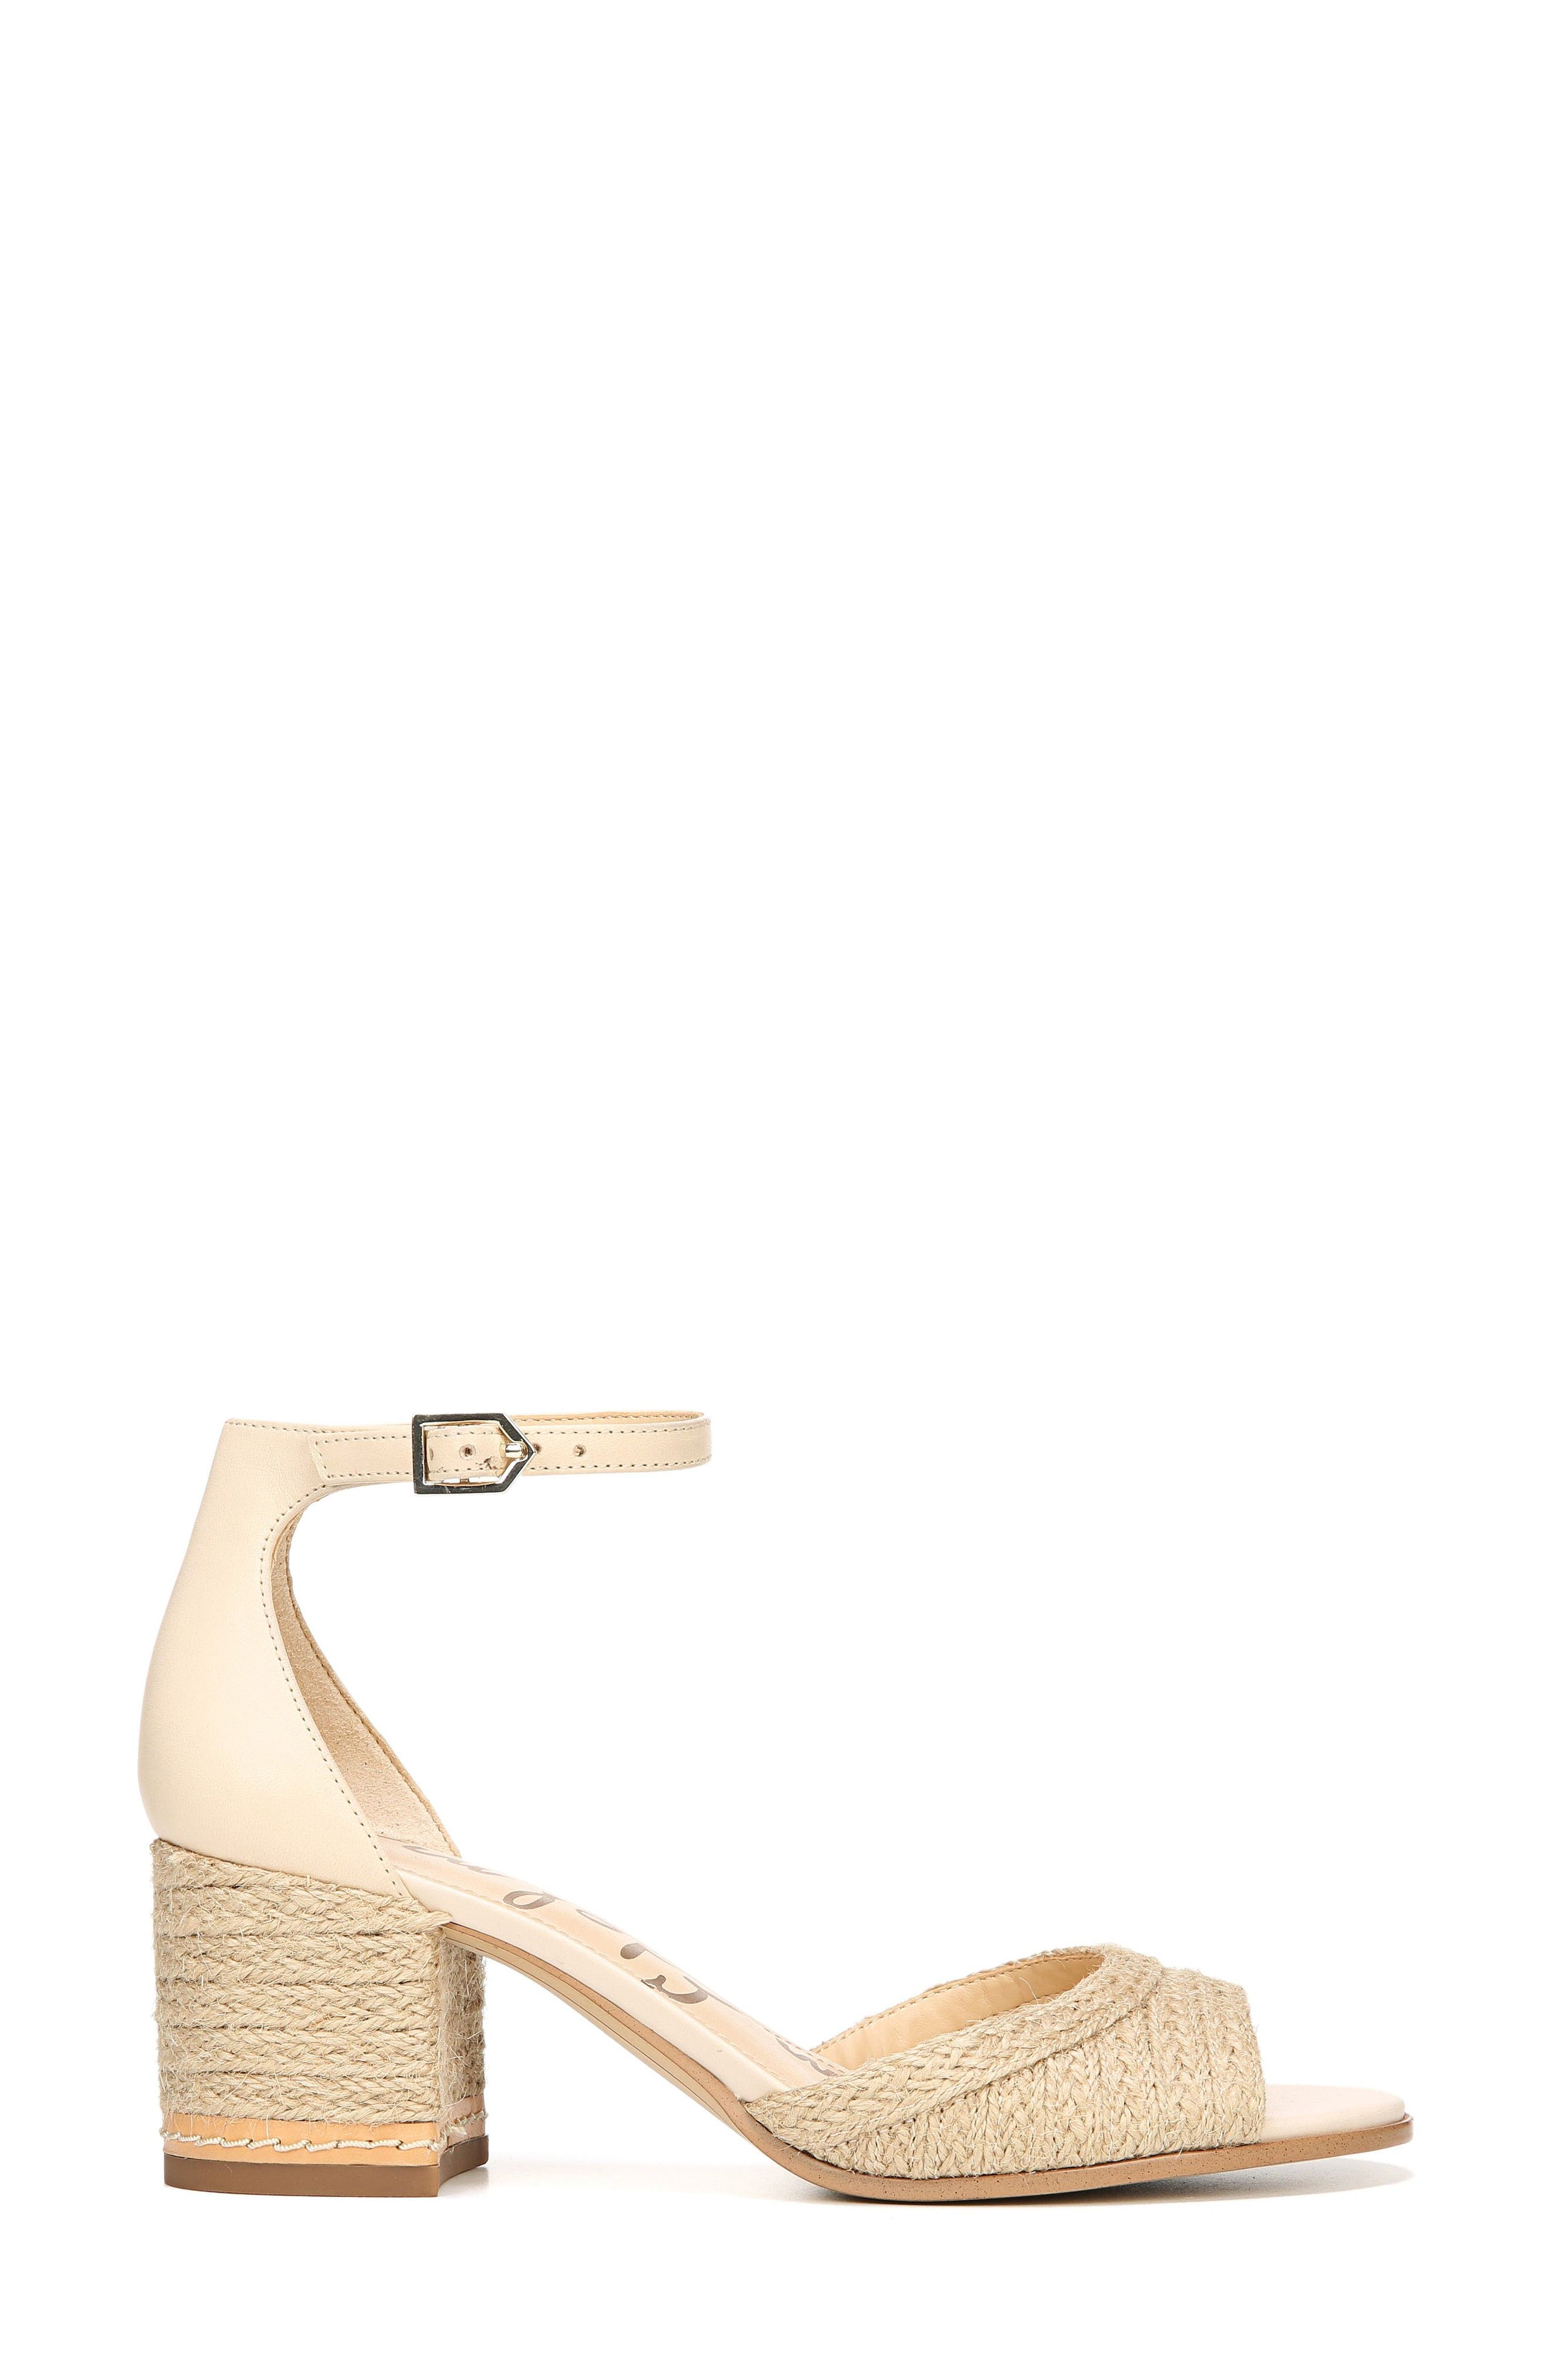 Susie 2 Ankle Strap Sandal,                             Alternate thumbnail 3, color,                             Summer Sand Leather